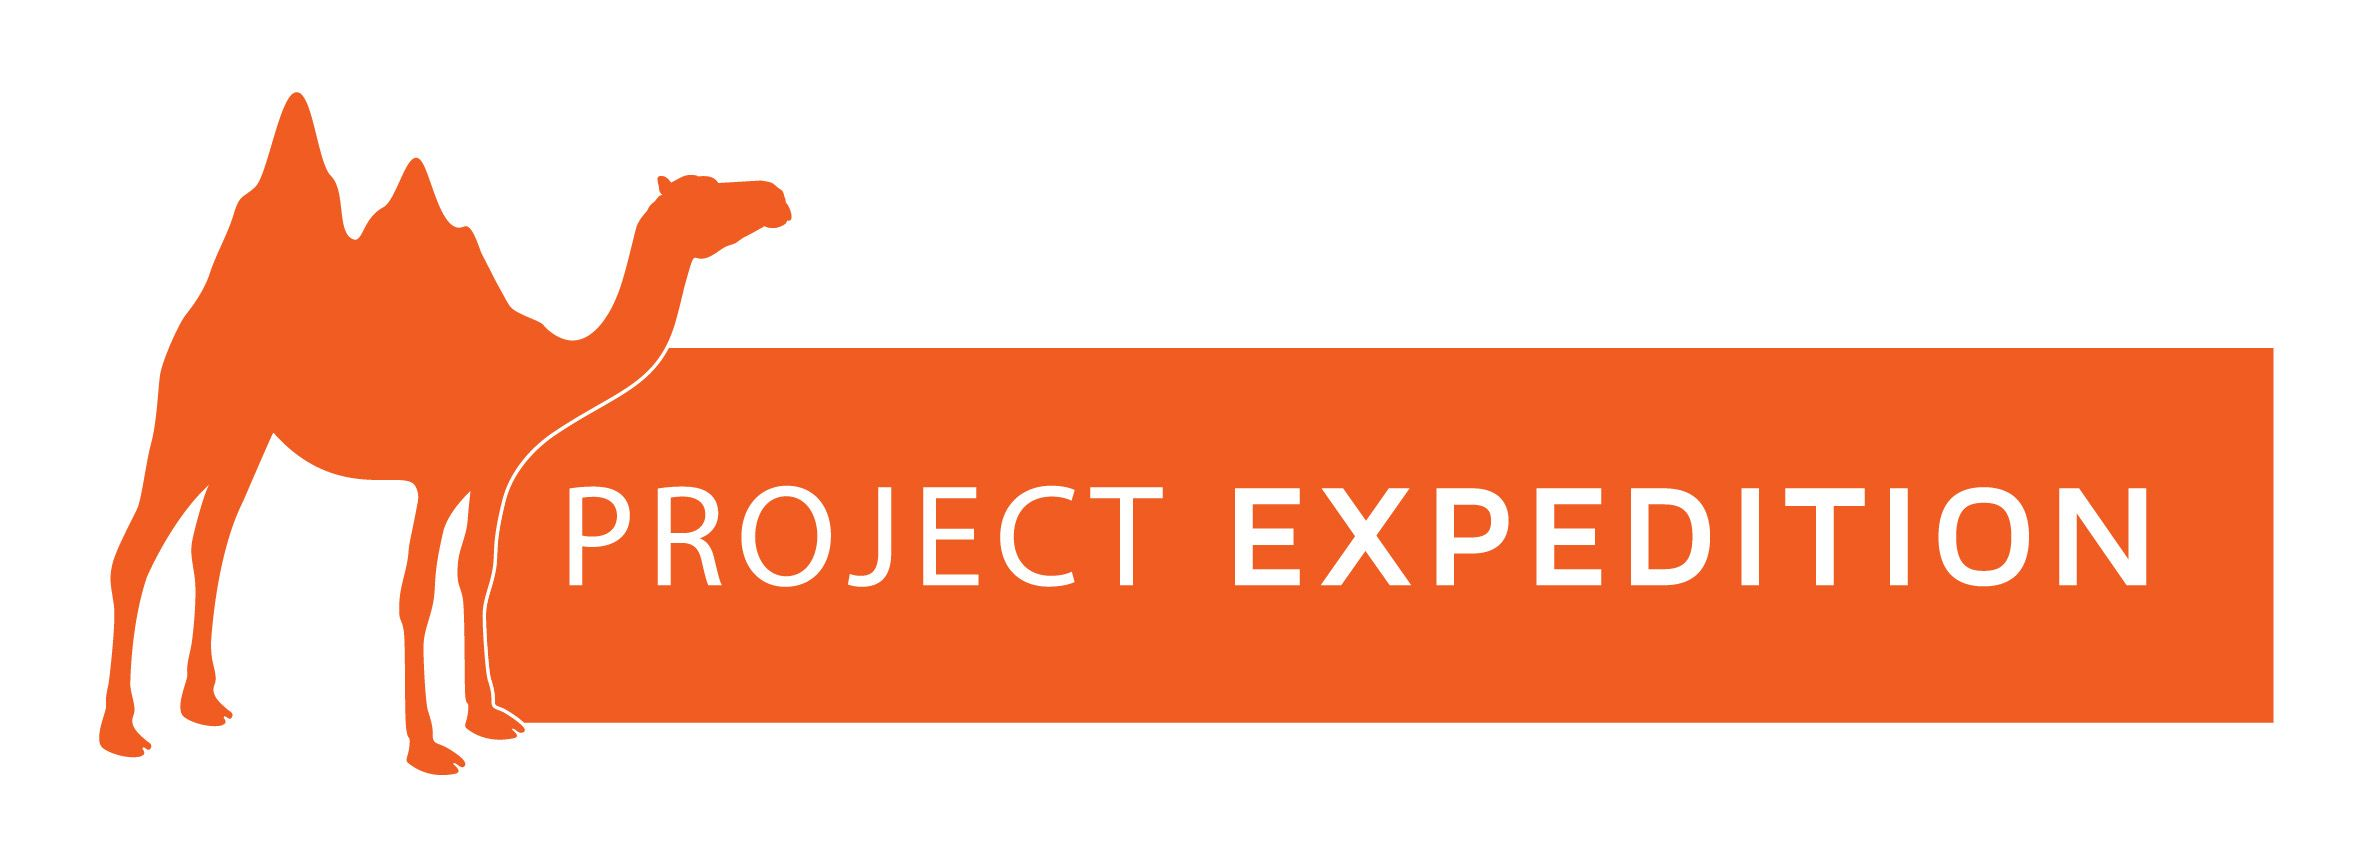 Tours & Excursions – Project Expedition